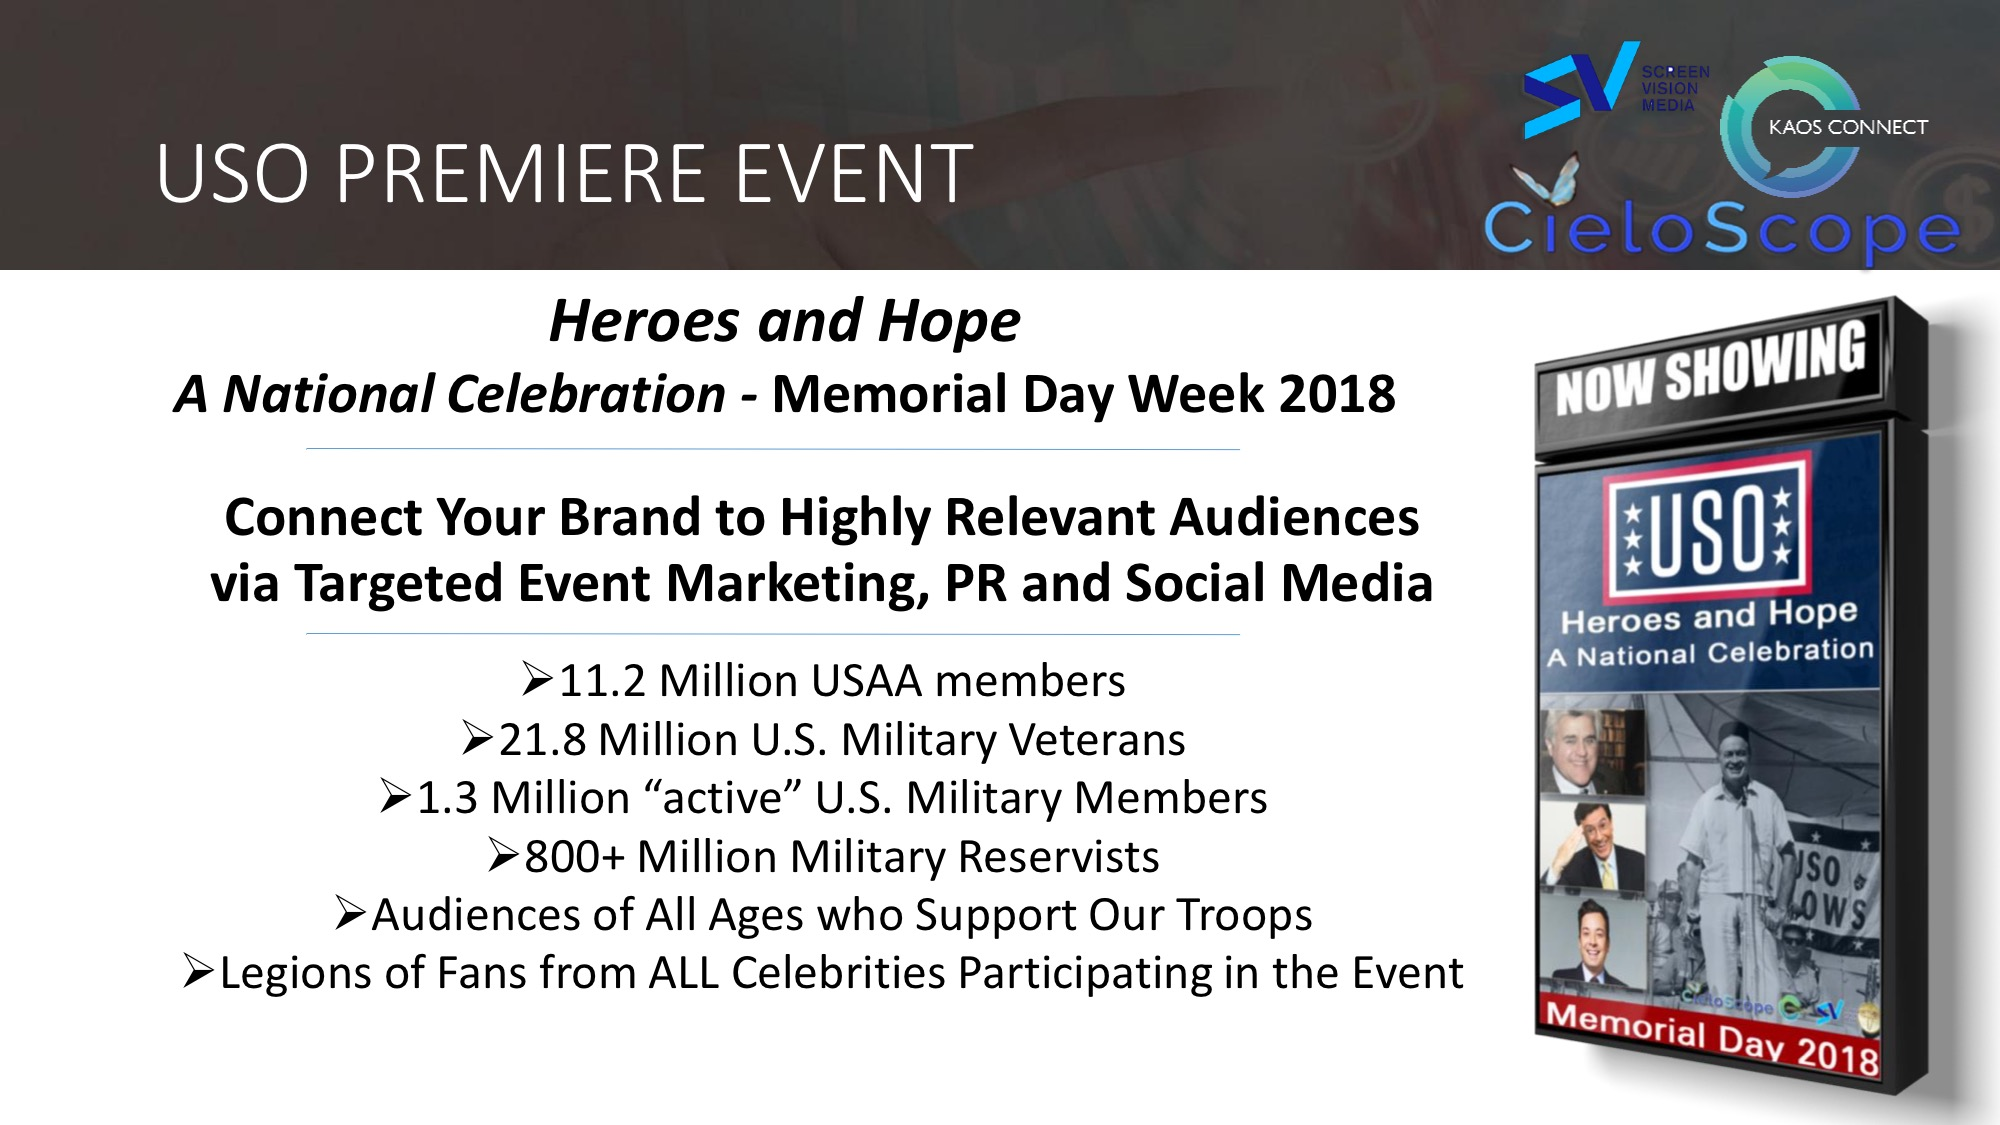 Heroes and Hope USO Overview_3.18.17 3.jpeg